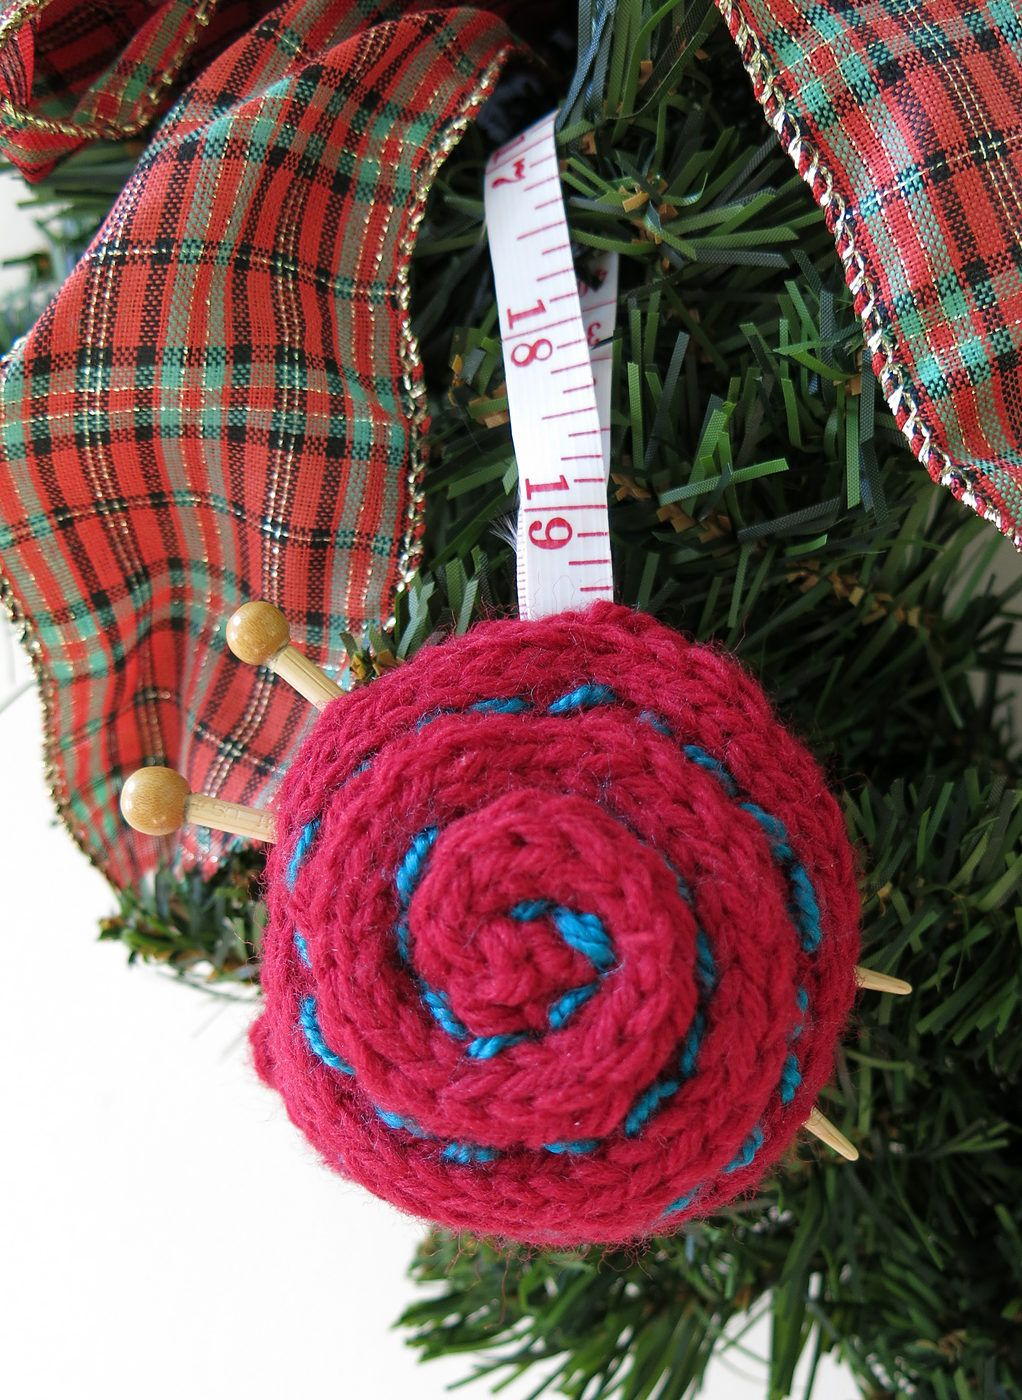 Free knitting pattern for yarn ball ornament easy knitting free knitting pattern for yarn ball ornament easy knitting pattern for an ornament constructed of bankloansurffo Choice Image